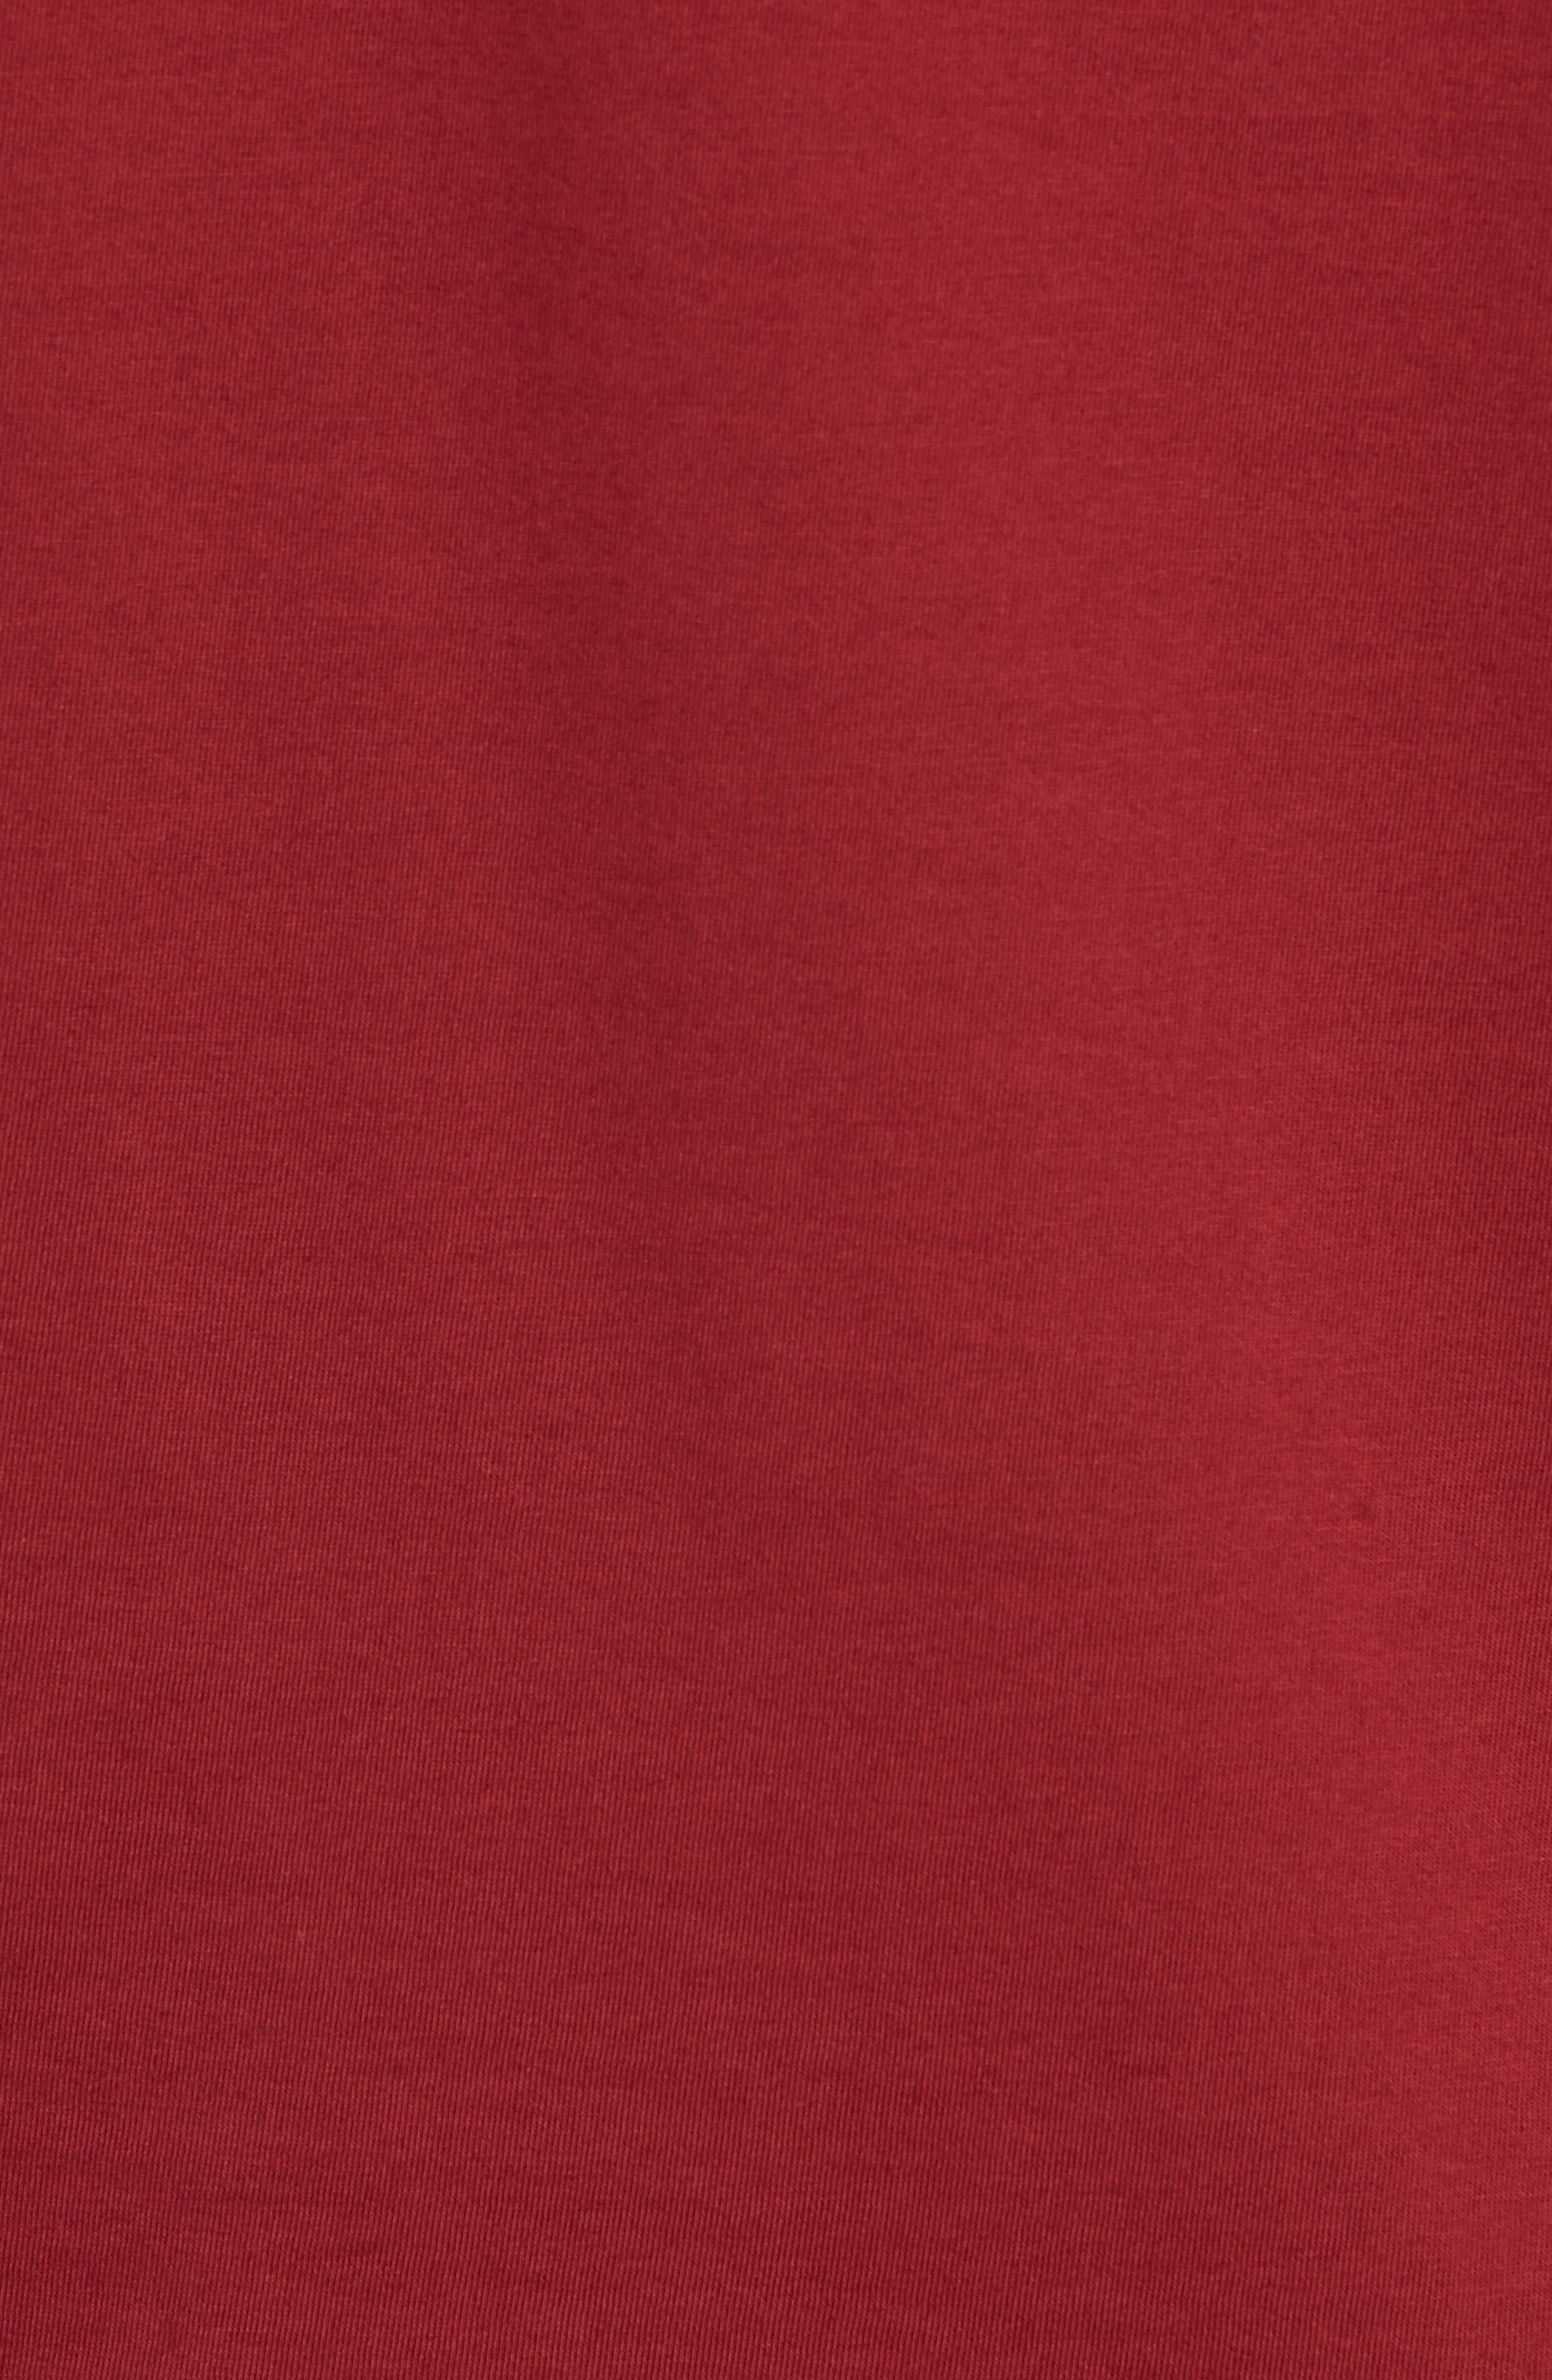 Bound Classic Crew T-Shirt,                             Alternate thumbnail 5, color,                             RED